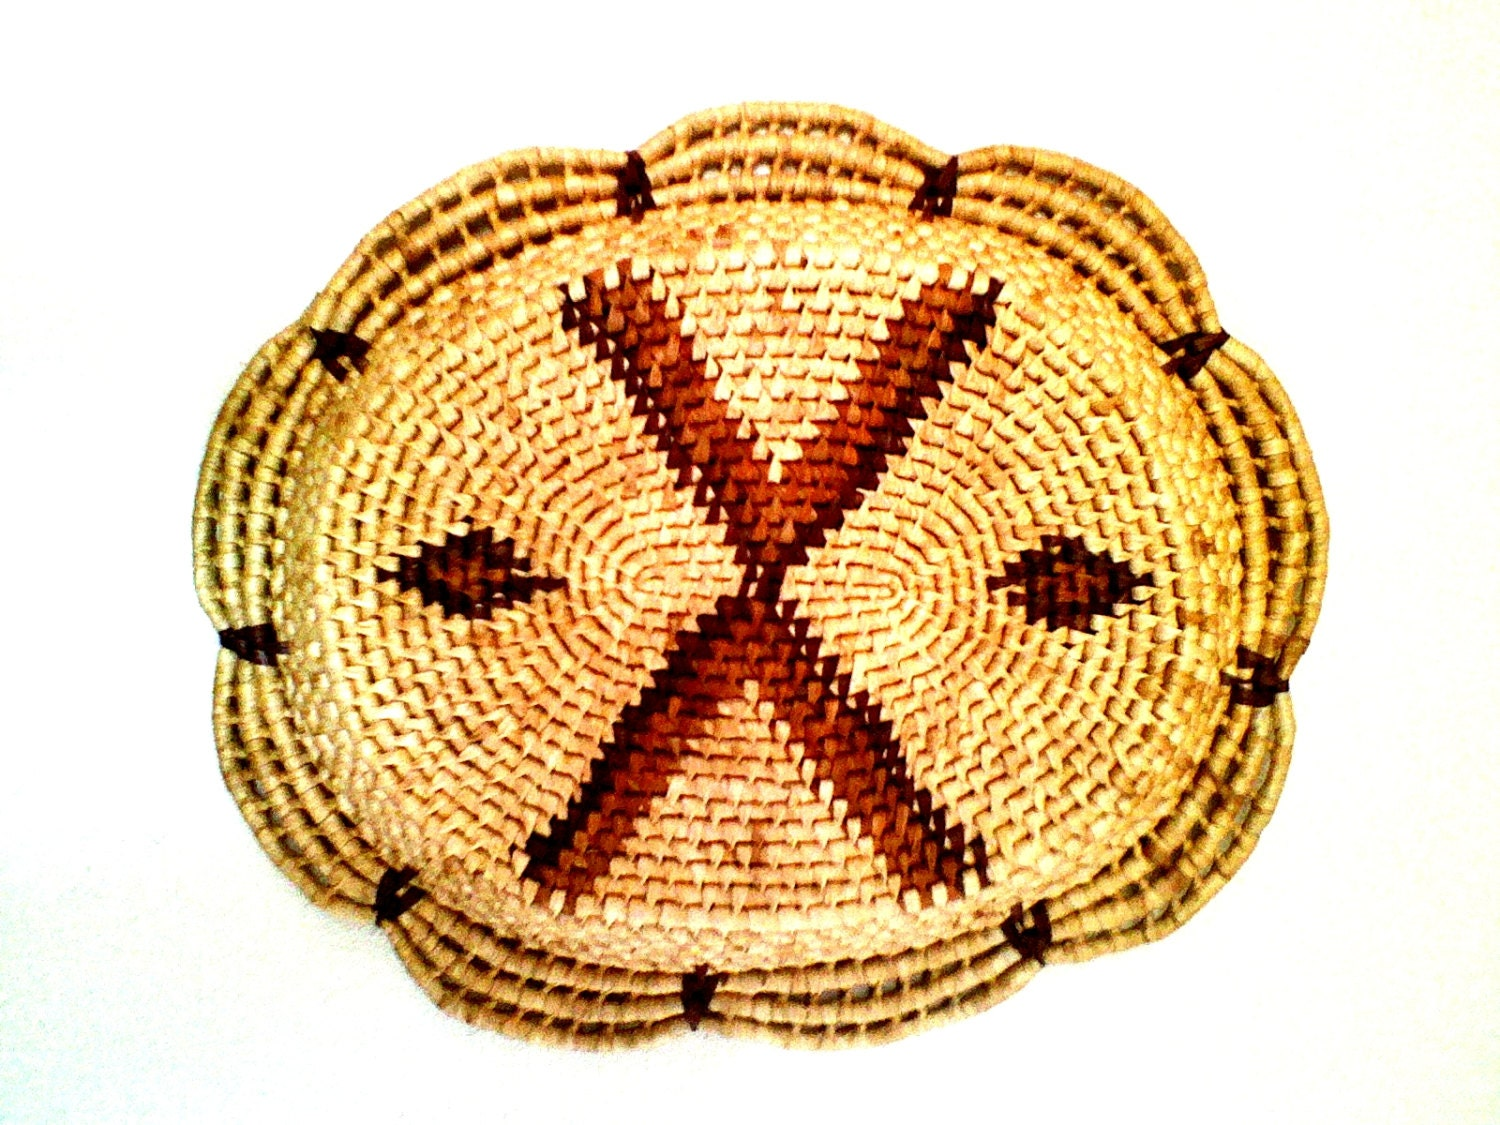 Basket Weaving With Raffia : Native american hand woven raffia basket with open by